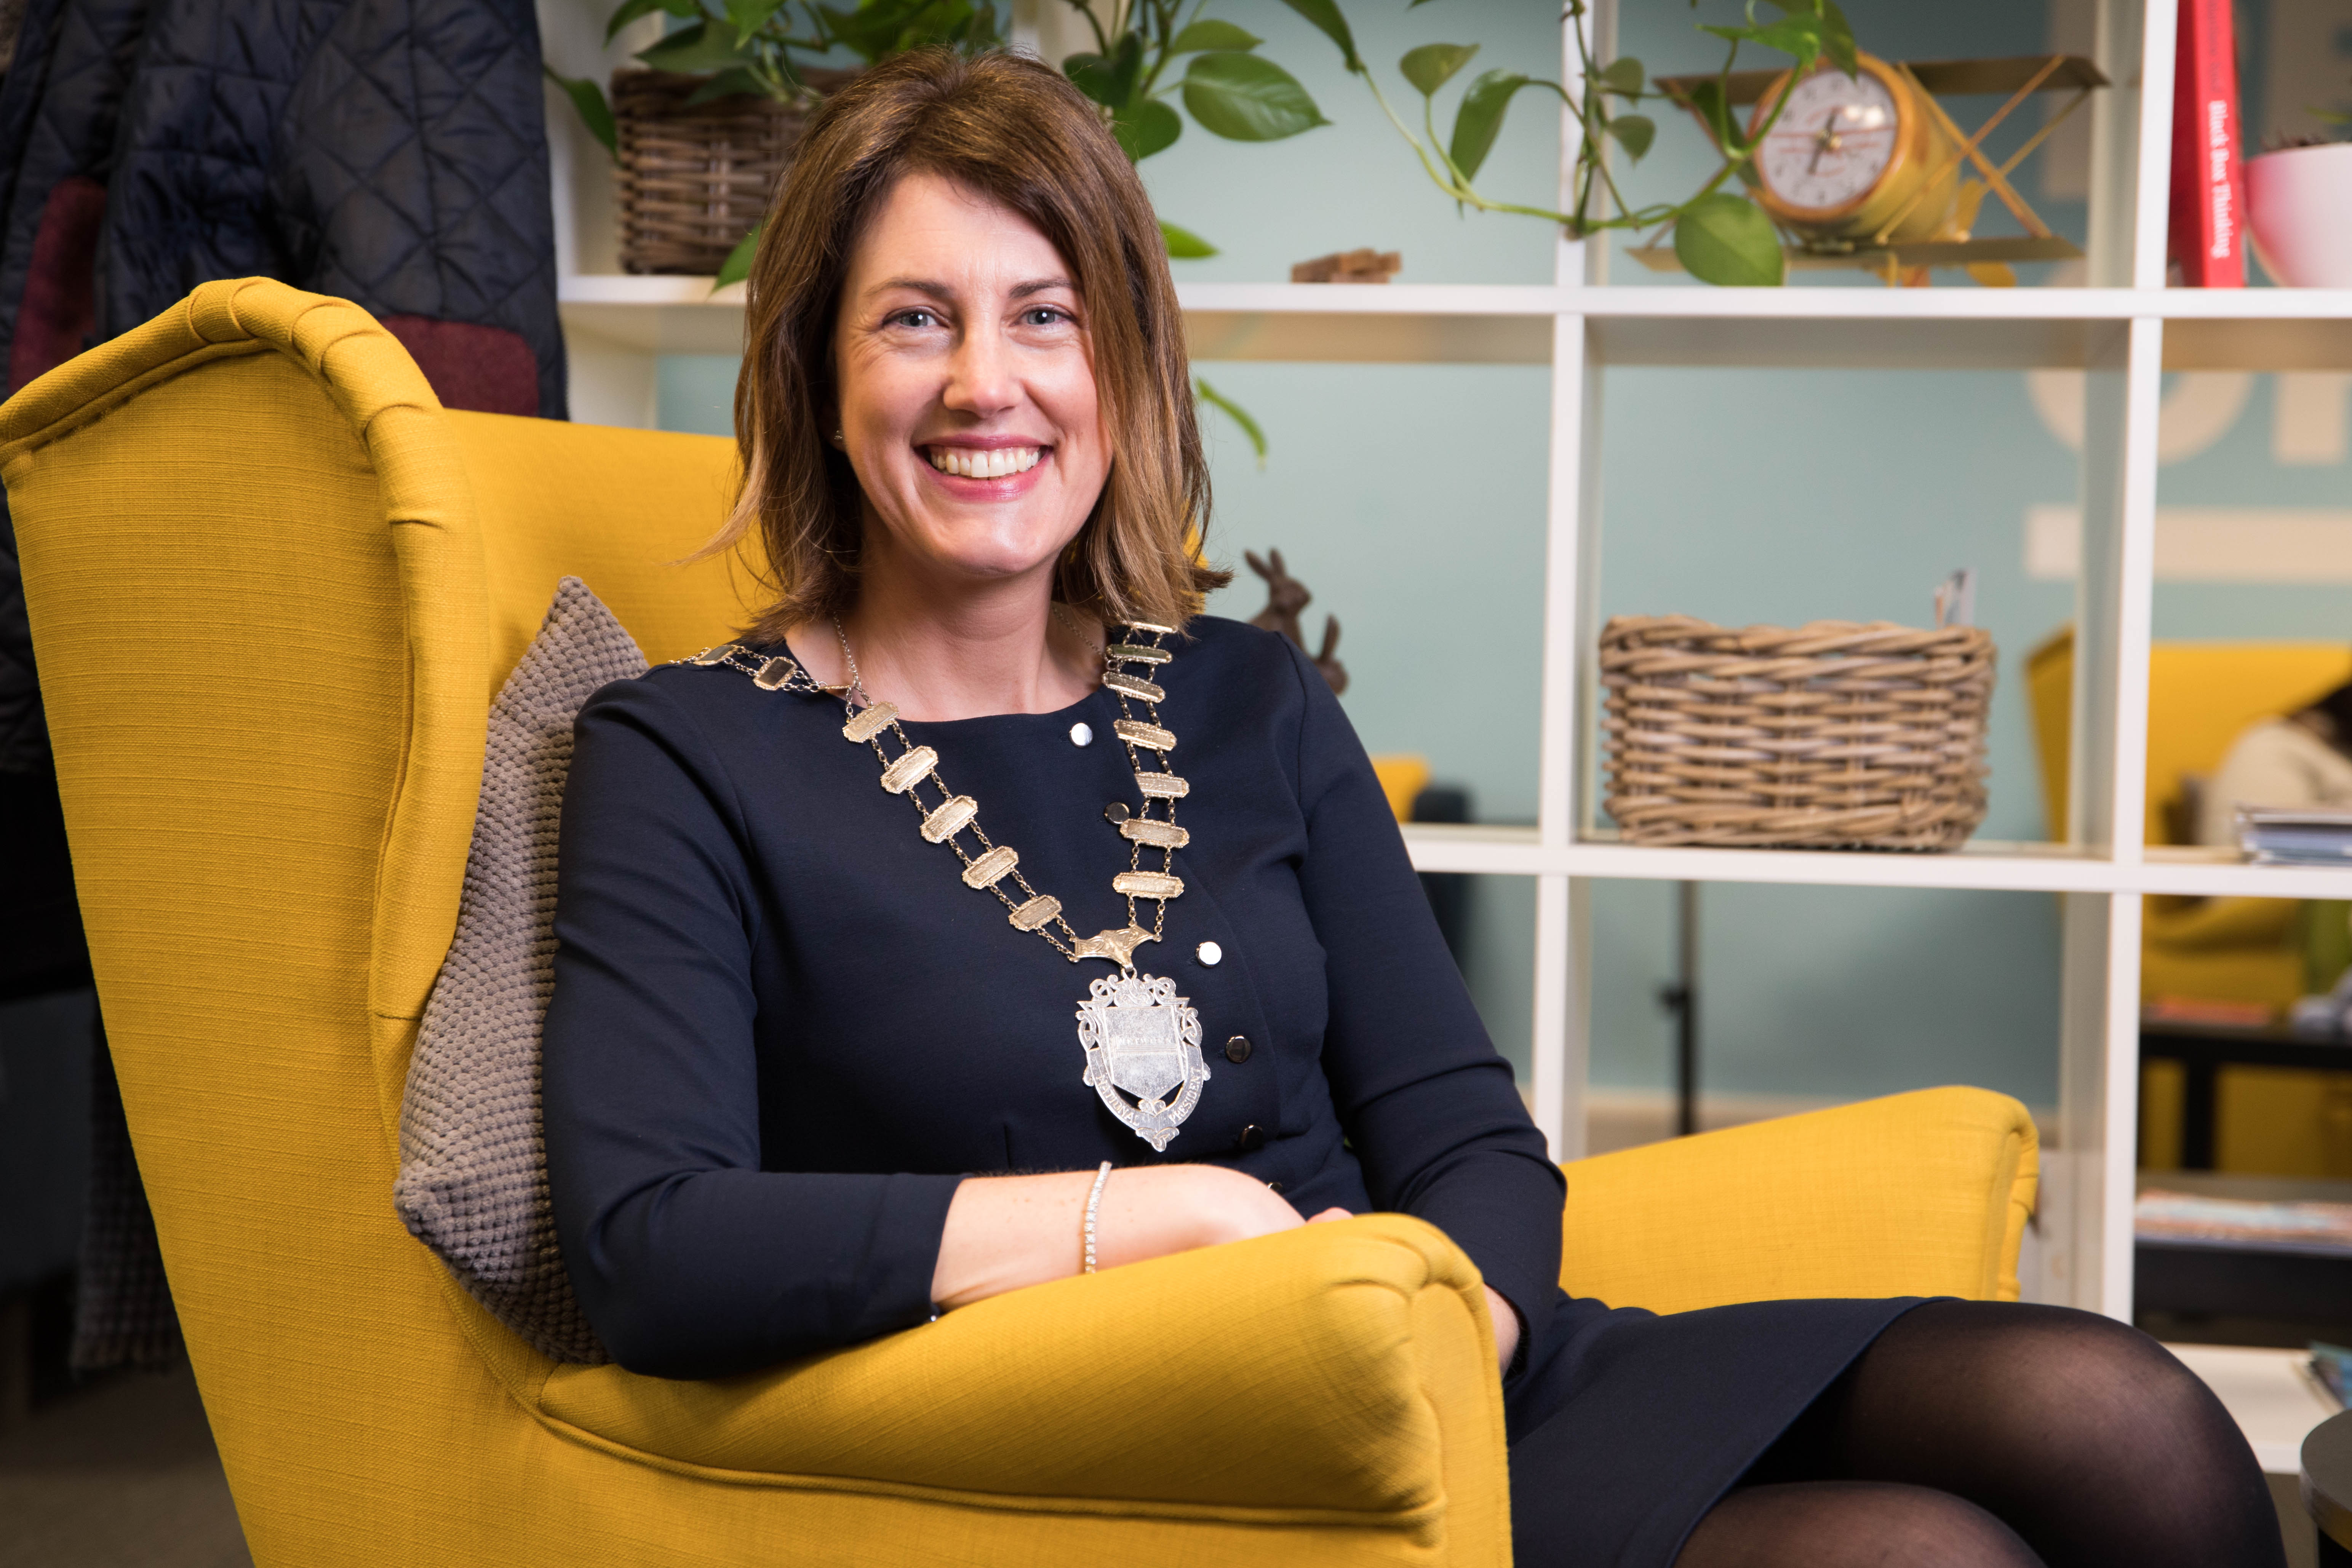 How Network Ireland Empowers Women to #StepUp Through Events